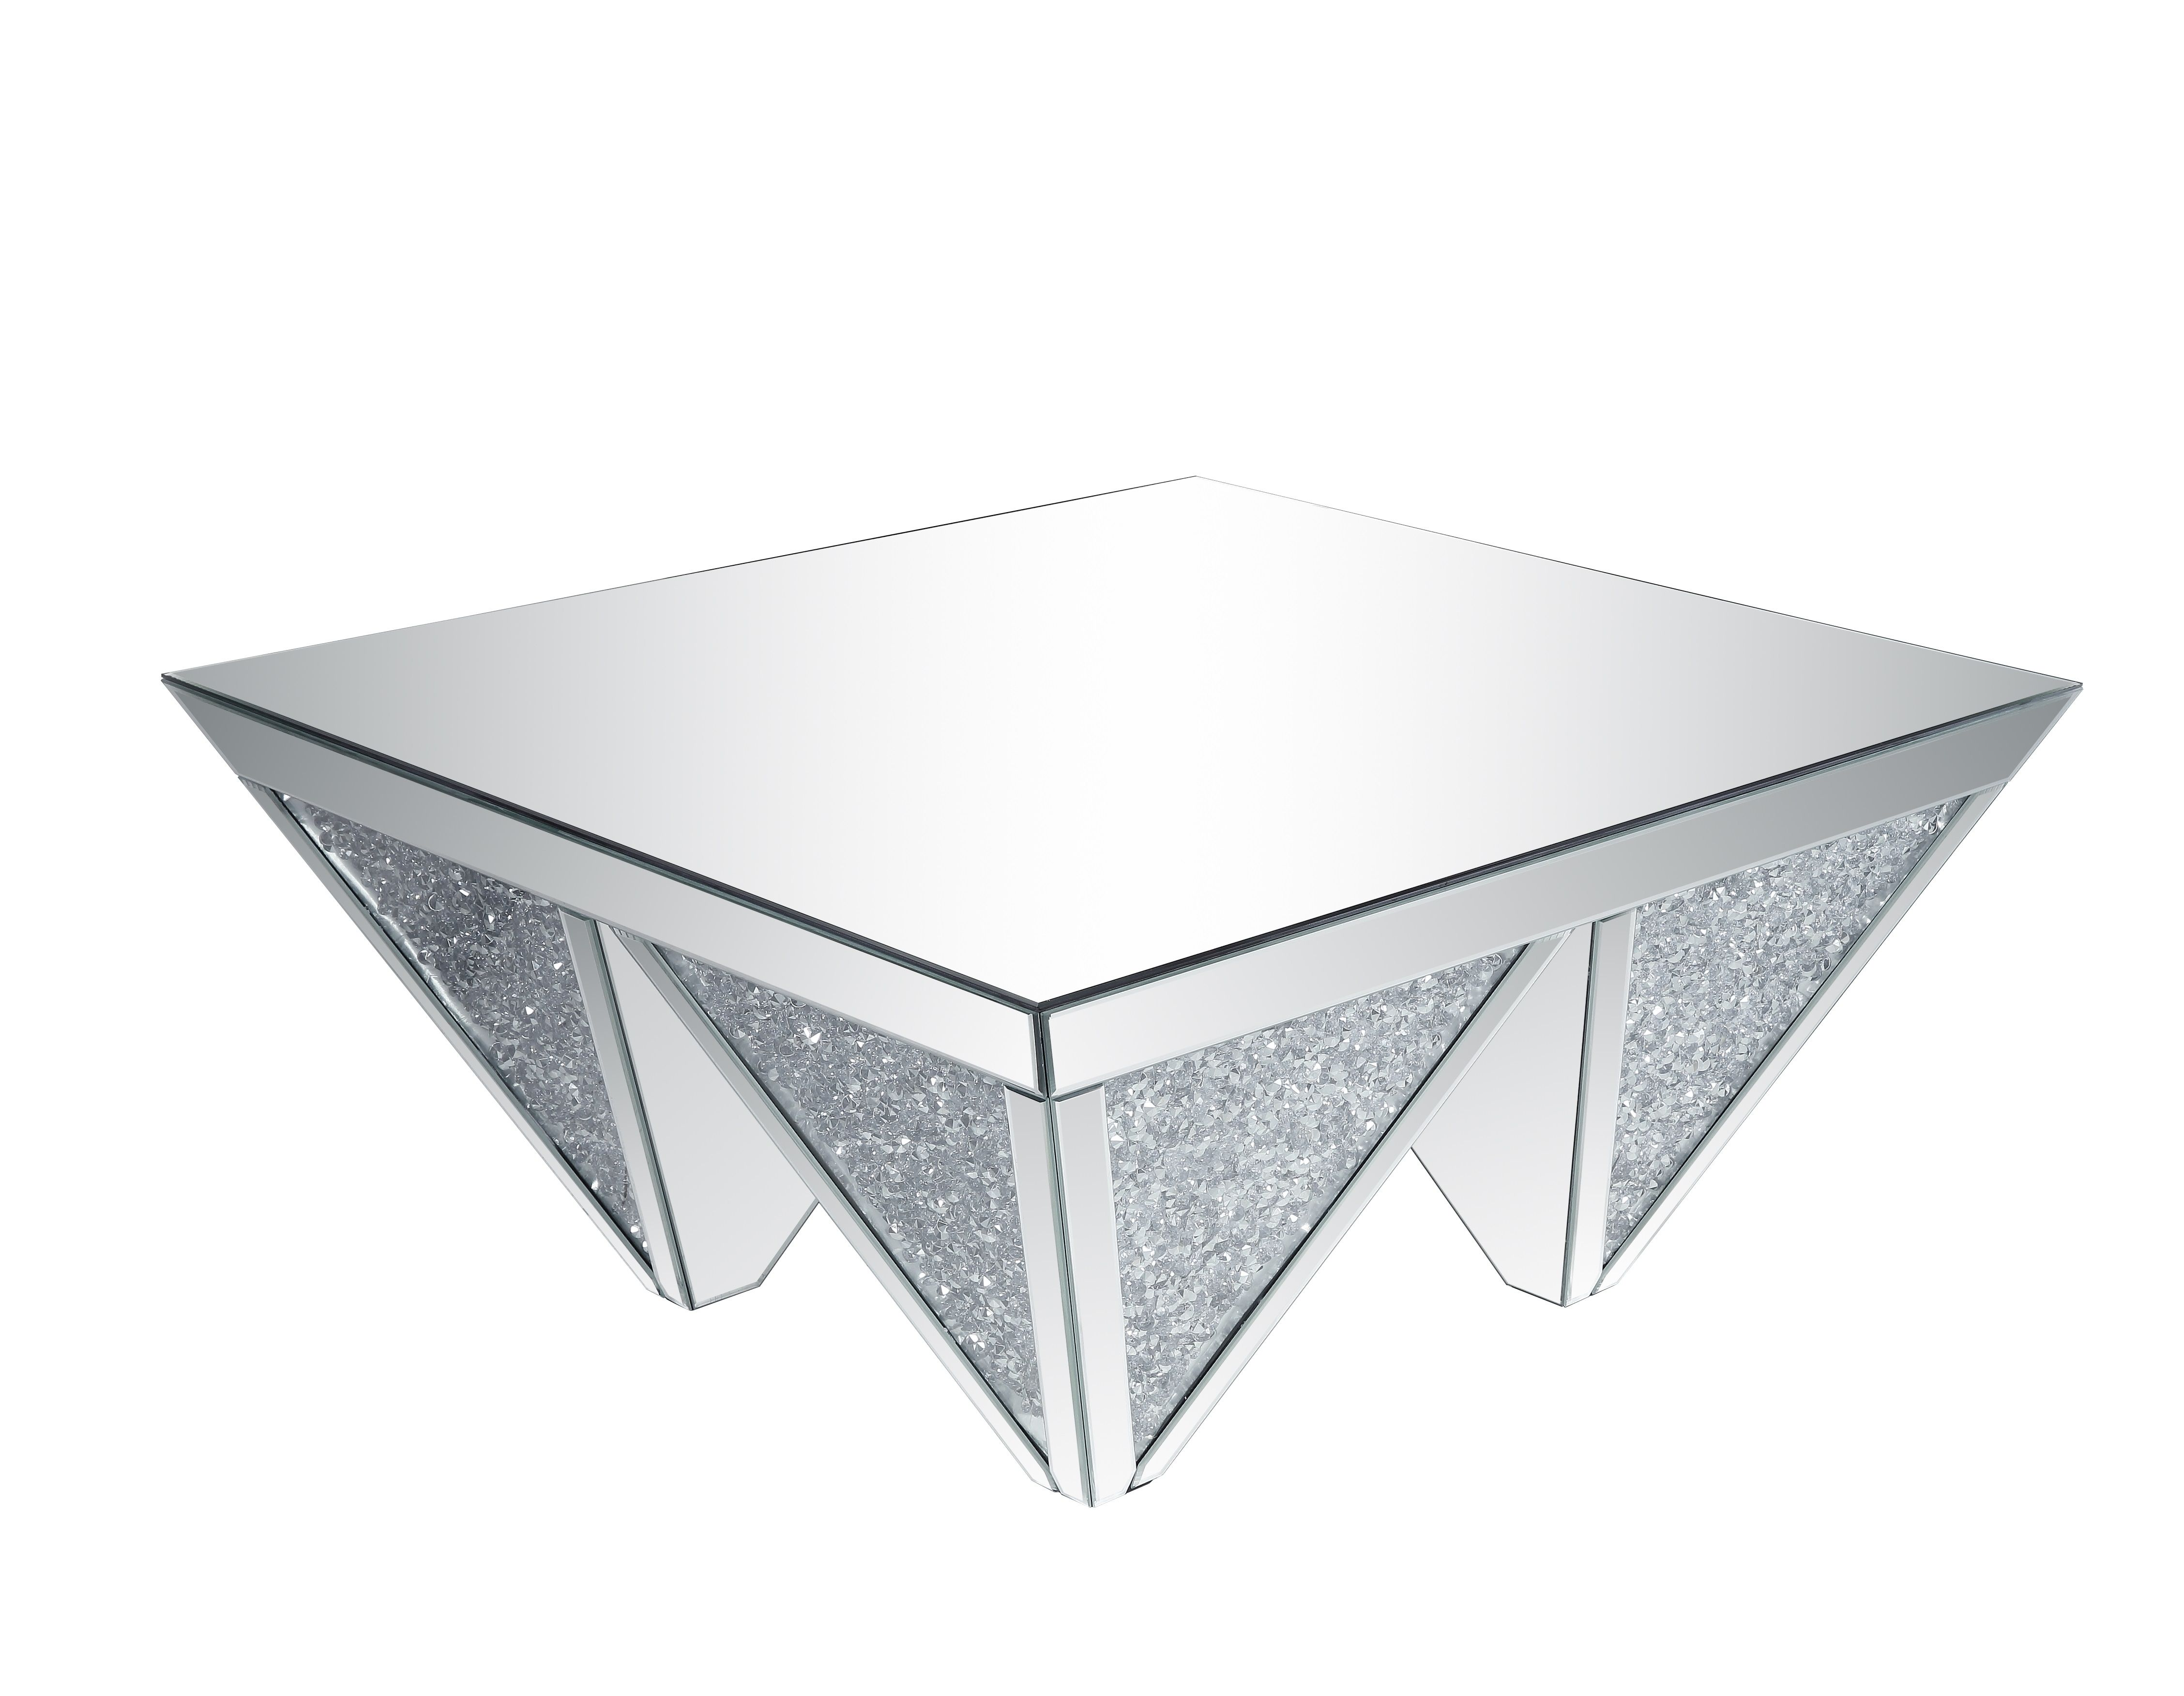 Saltoro Sherpi Sparkling Coffee Table With Faux Diamonds Inlay Silver And Clear Coffee Table Buy Coffee Table Faux Diamonds [ 3504 x 4512 Pixel ]